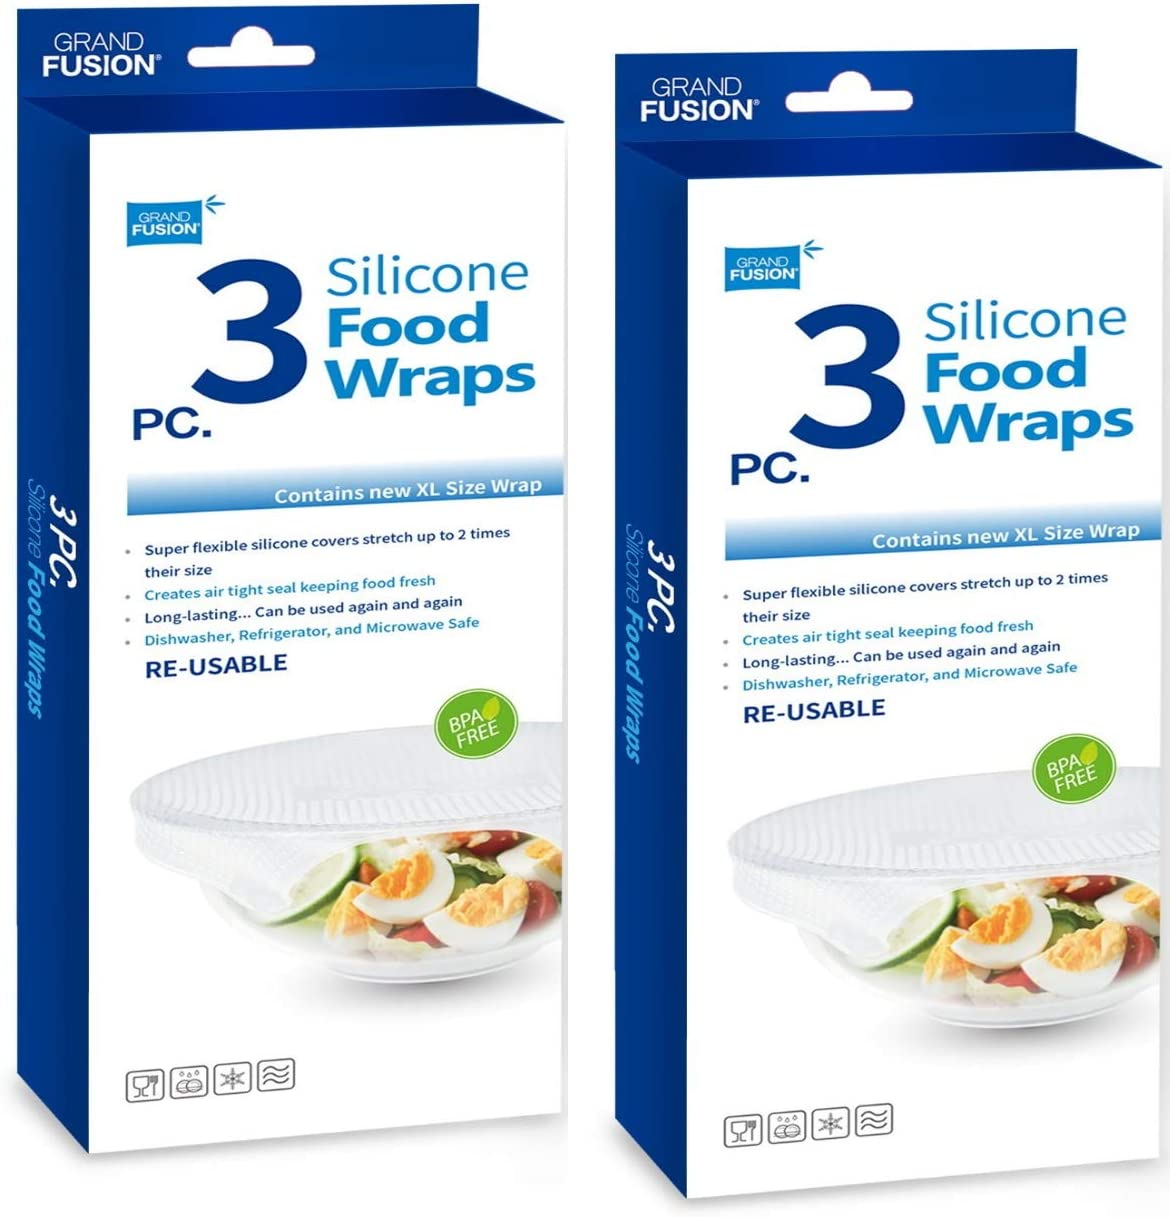 Flexible Reusable Microwave Safe Silicone Food Wraps. Clear BPA Free Cling Films Stretch Twice Their Size Making Air Tight Seals Around Ceramic and Most Plastic Plates and Bowls Preserving Food (6)